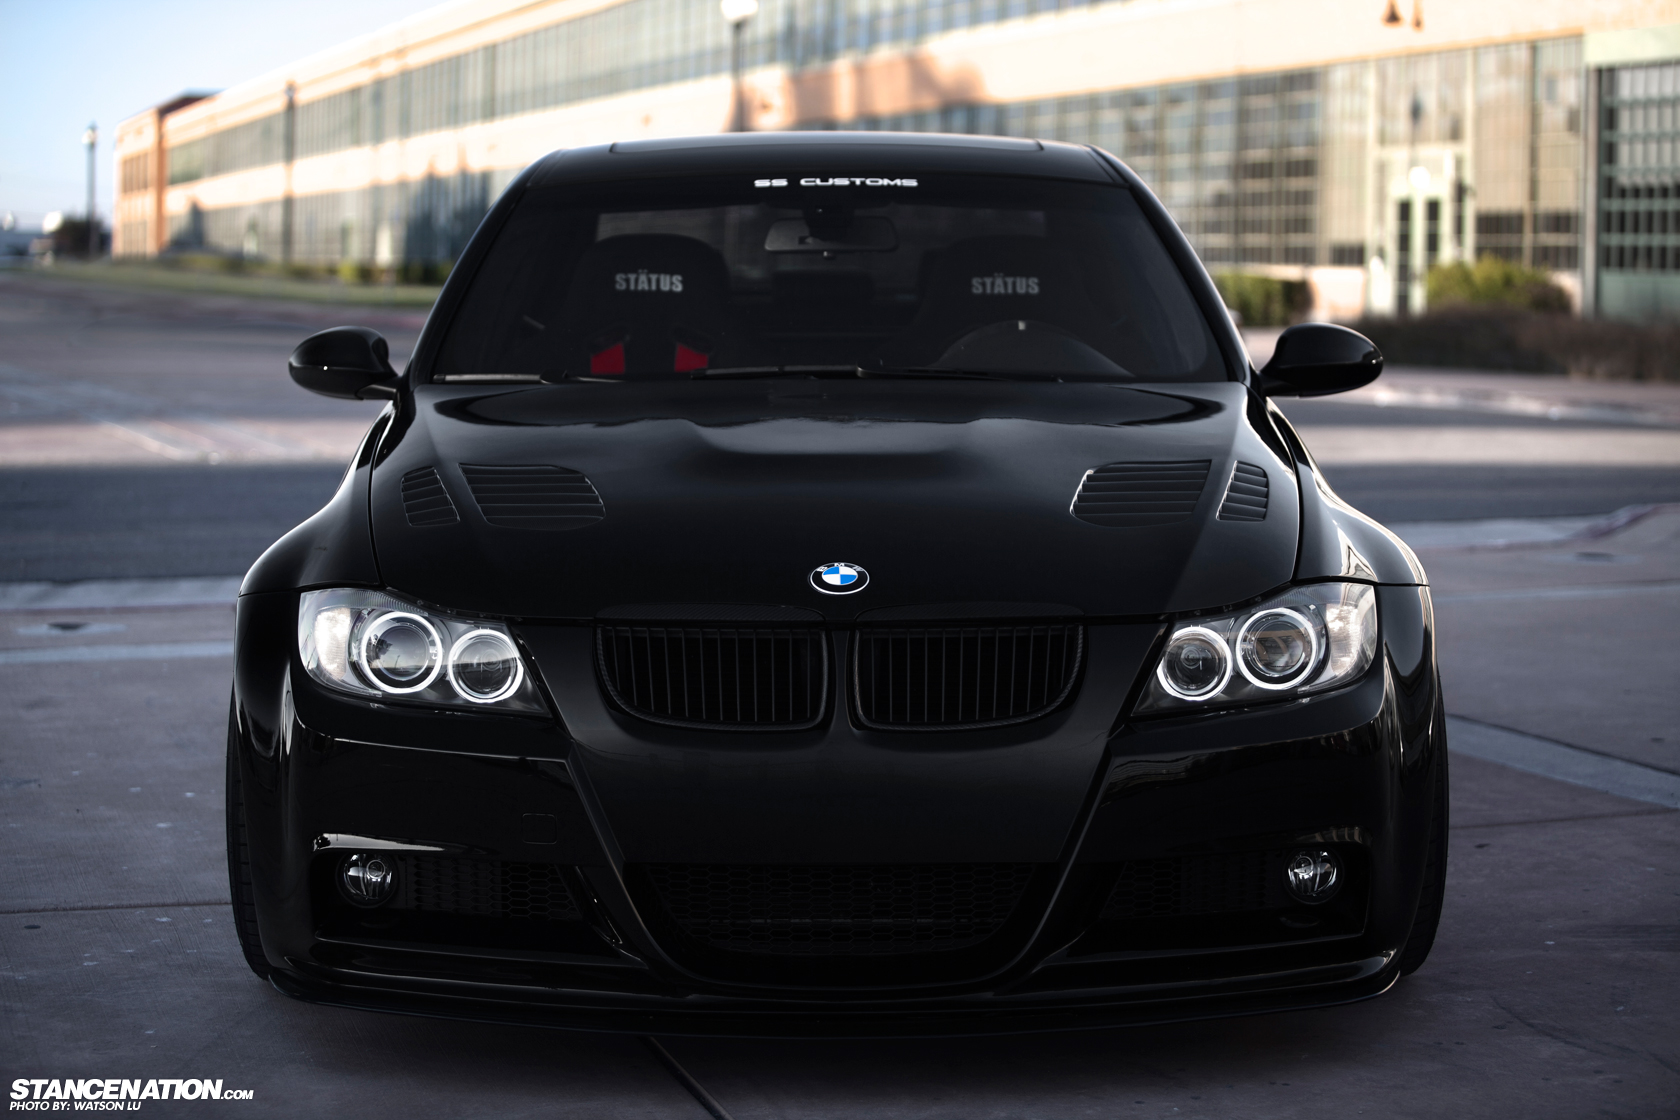 black magic lance 39 s wide bmw e90 stancenation form function. Black Bedroom Furniture Sets. Home Design Ideas